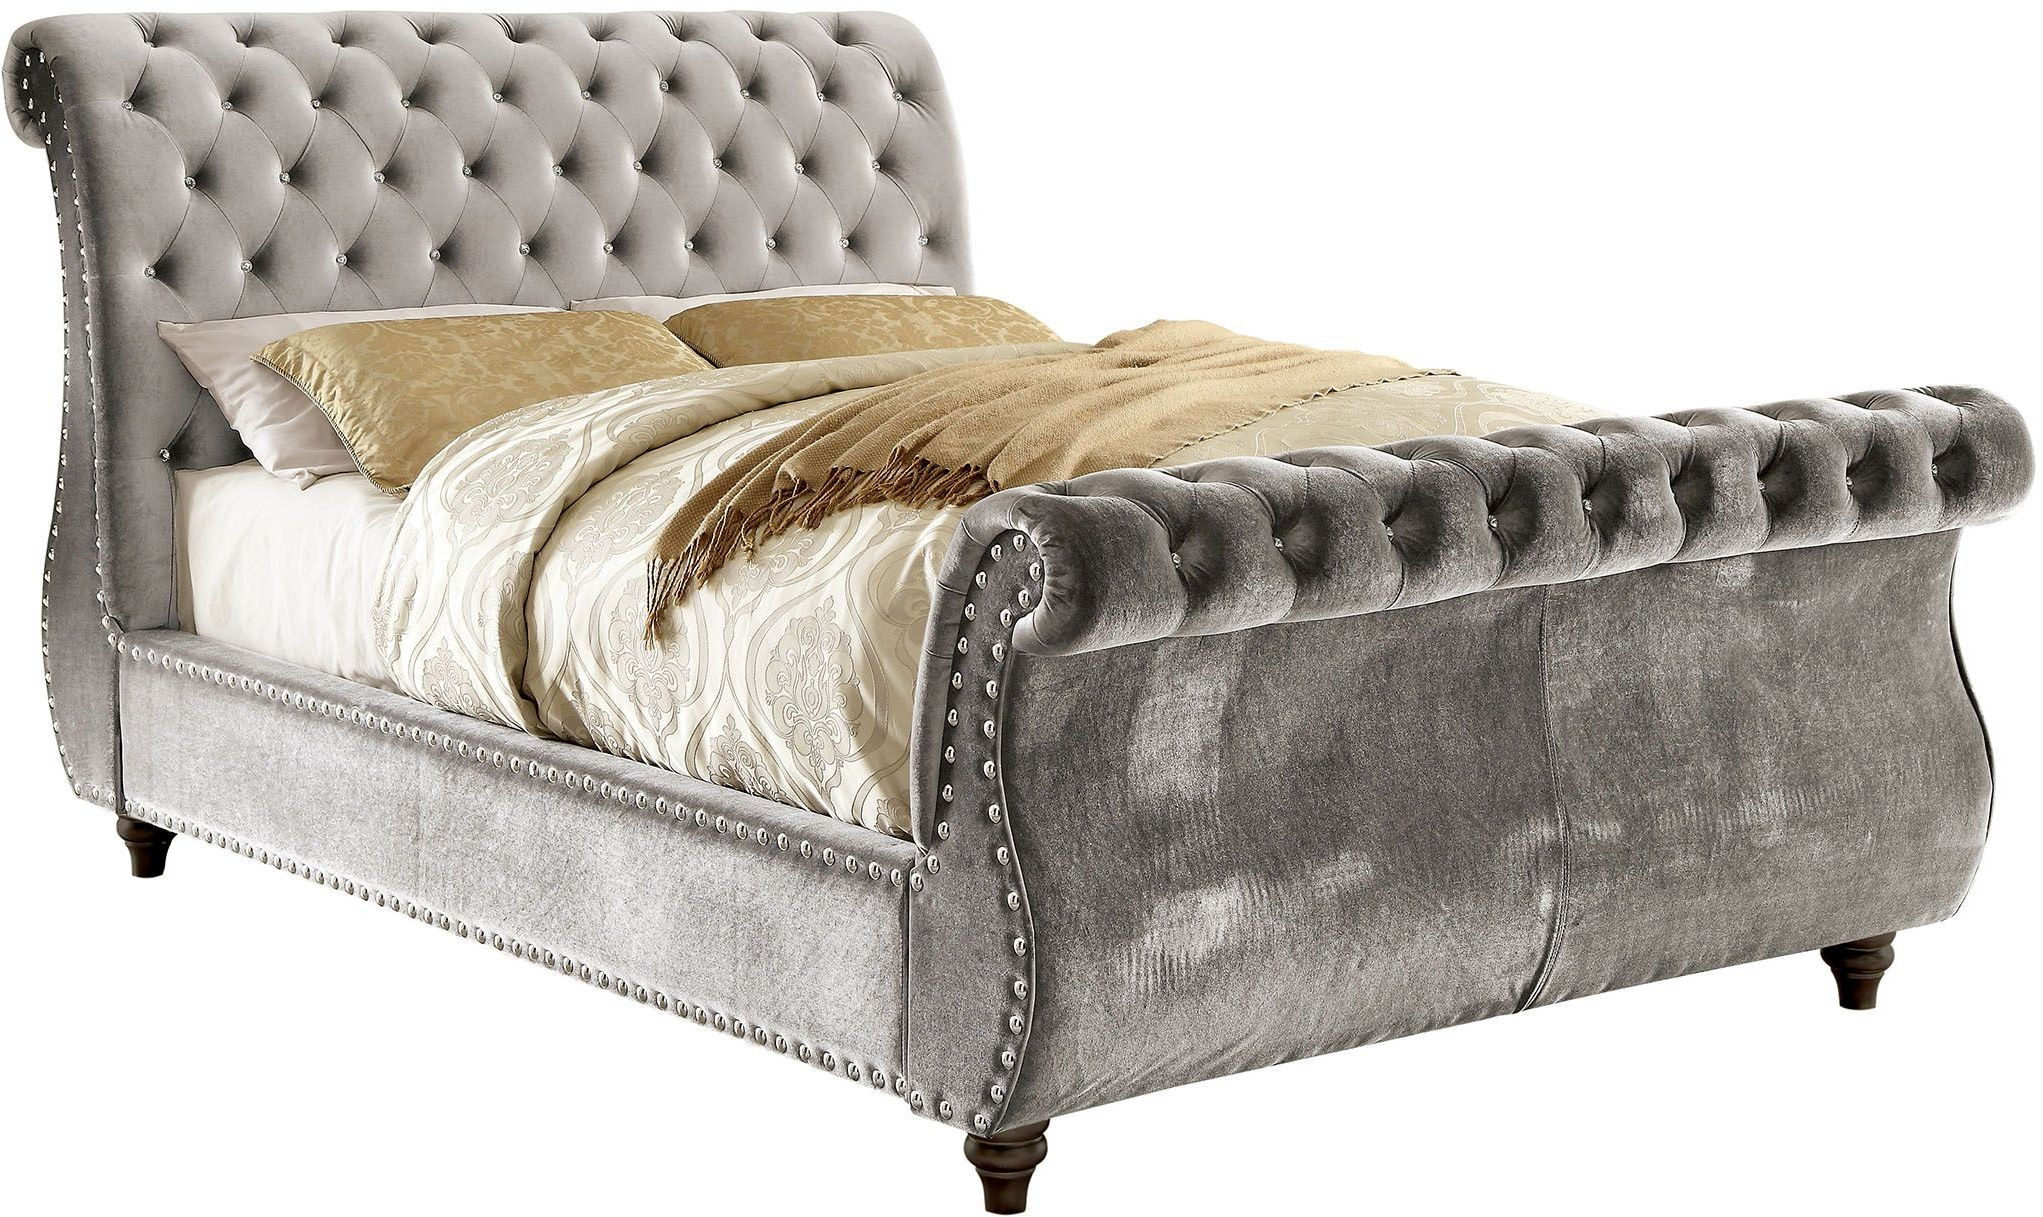 noella gray king upholstered sleigh bed cm7128gy ek furniture of america. Black Bedroom Furniture Sets. Home Design Ideas